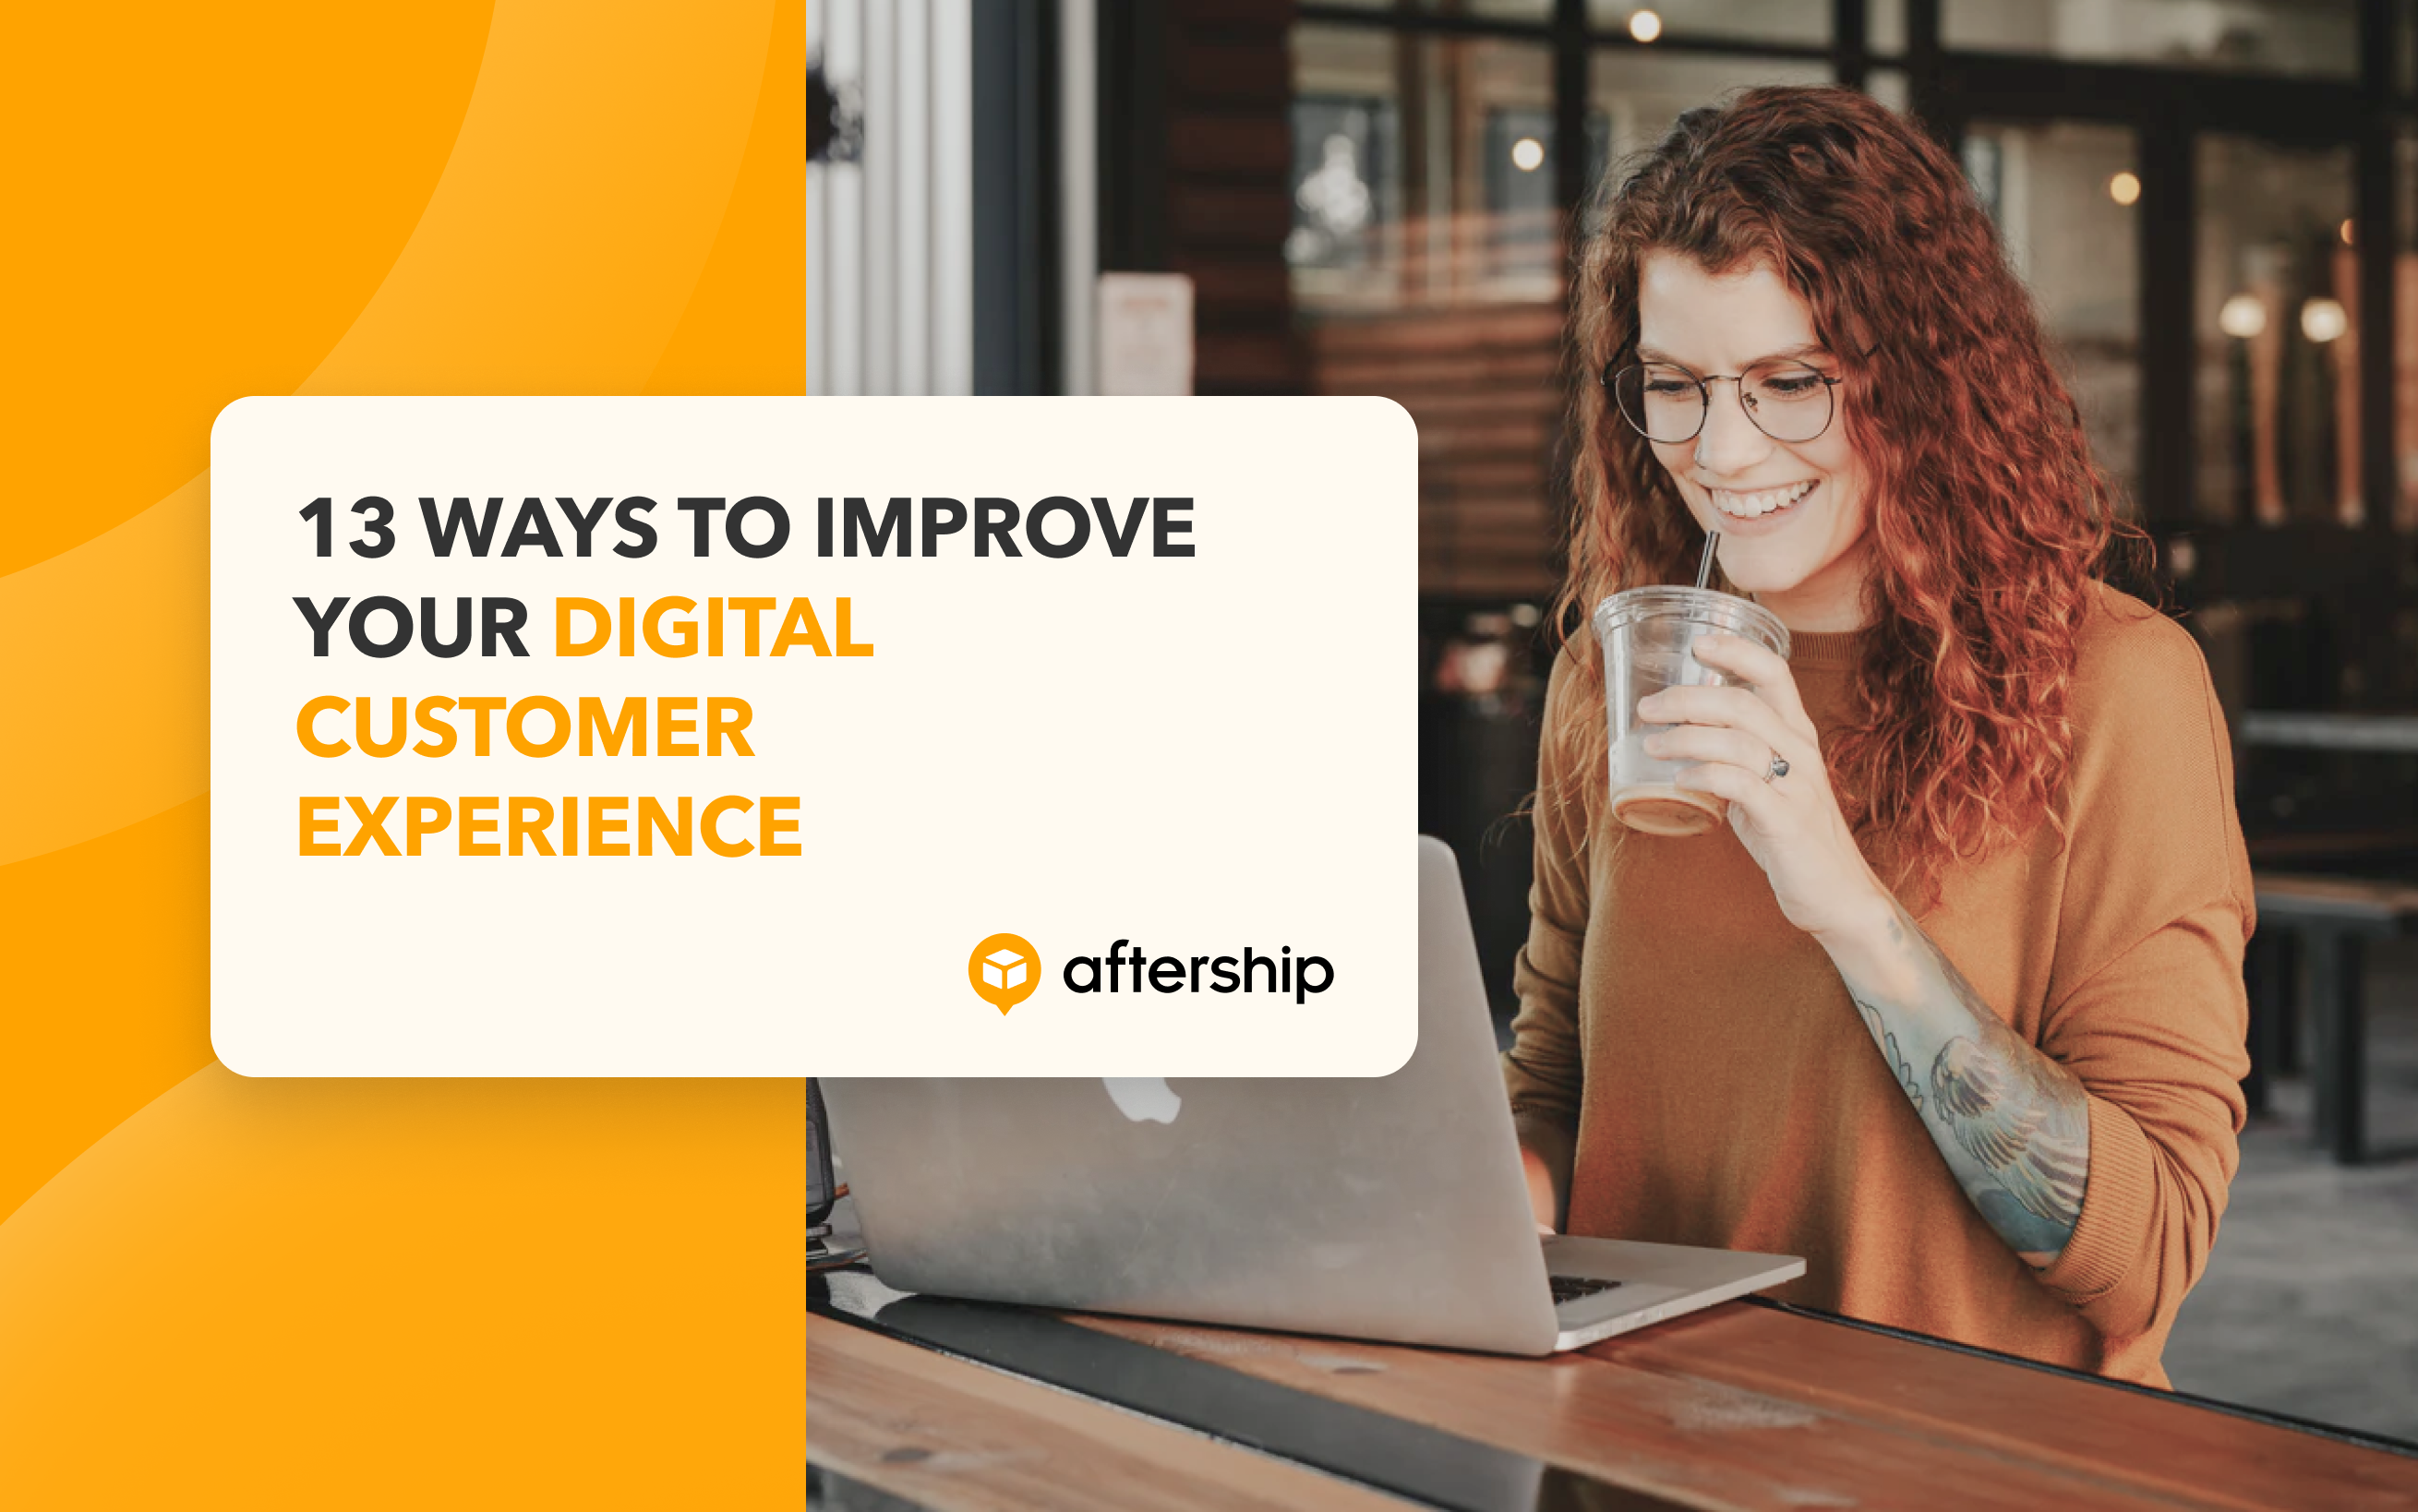 13 Ways to Improve Your Digital Customer Experience to Increase Sales